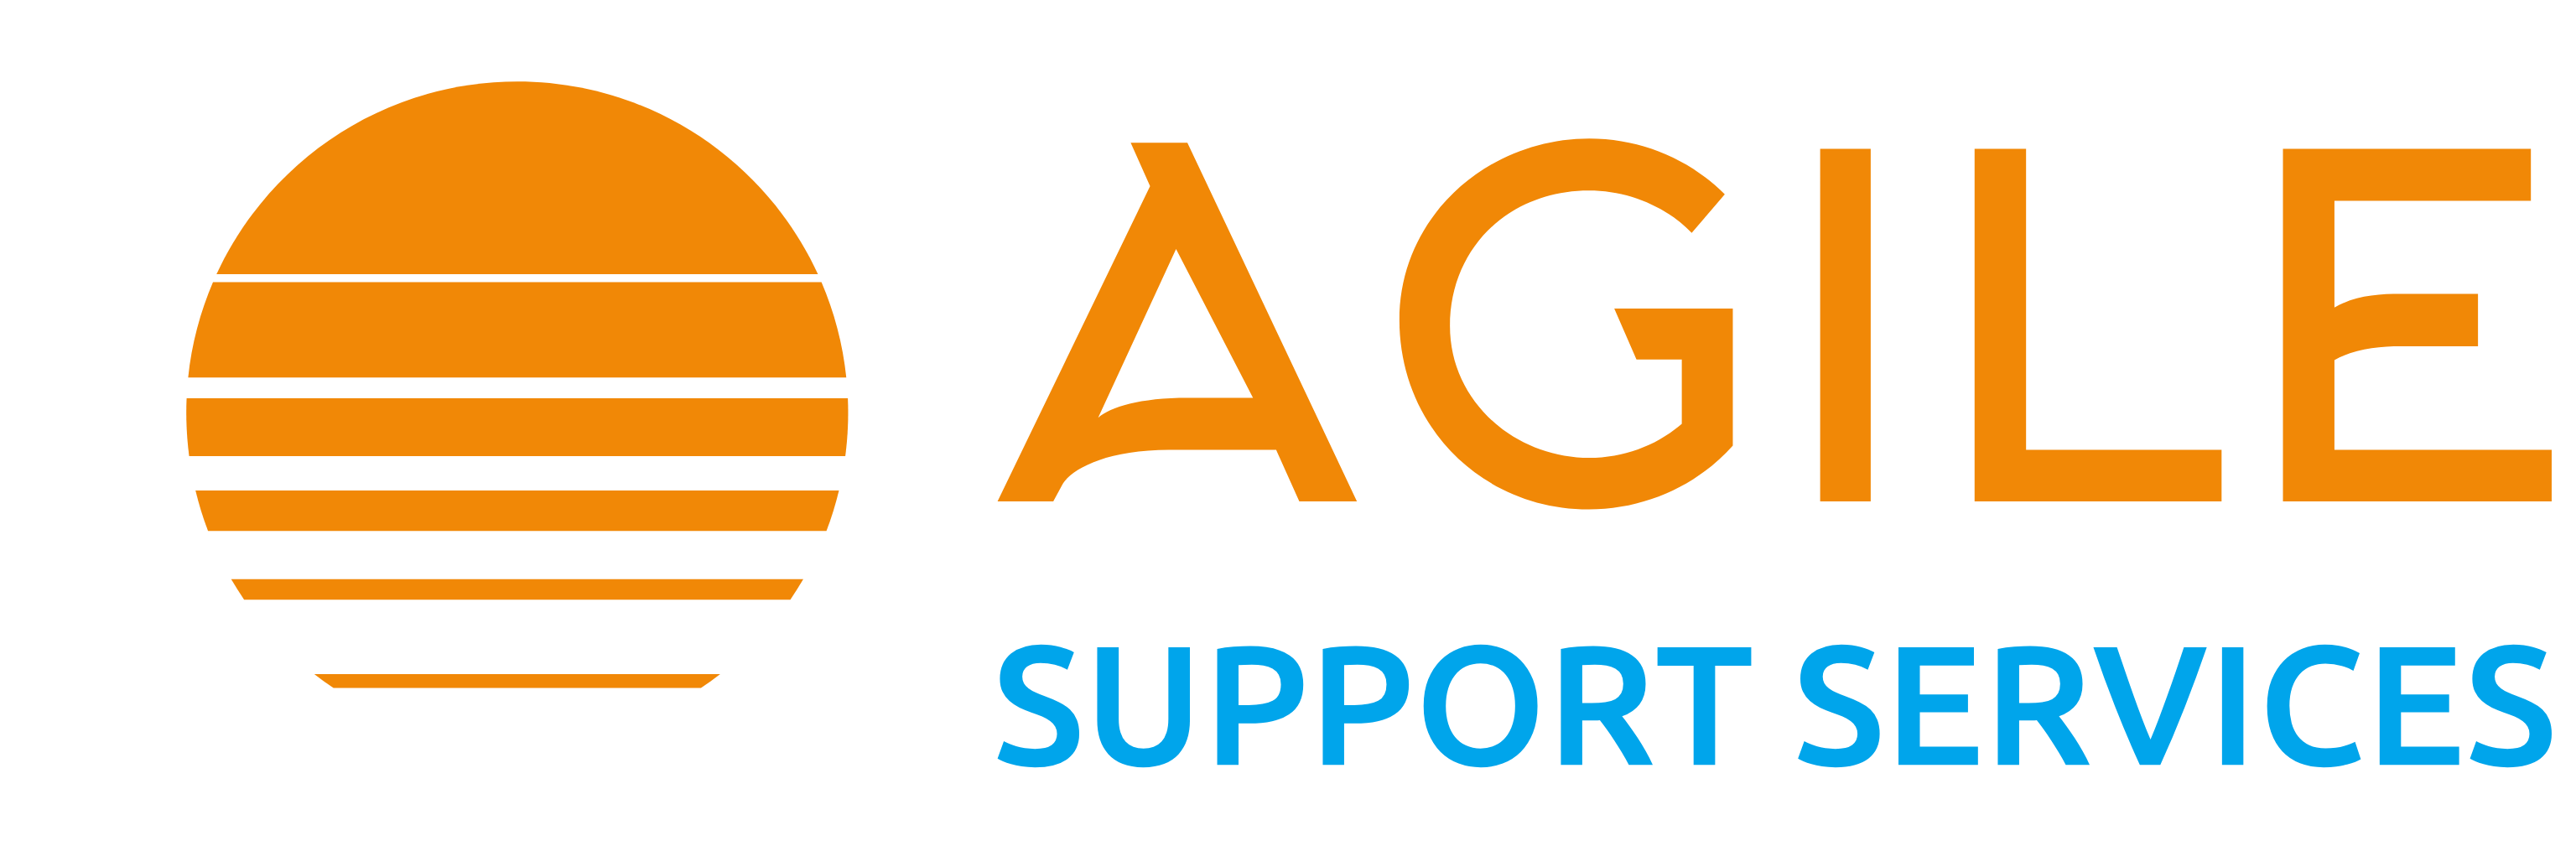 Agile Support Services